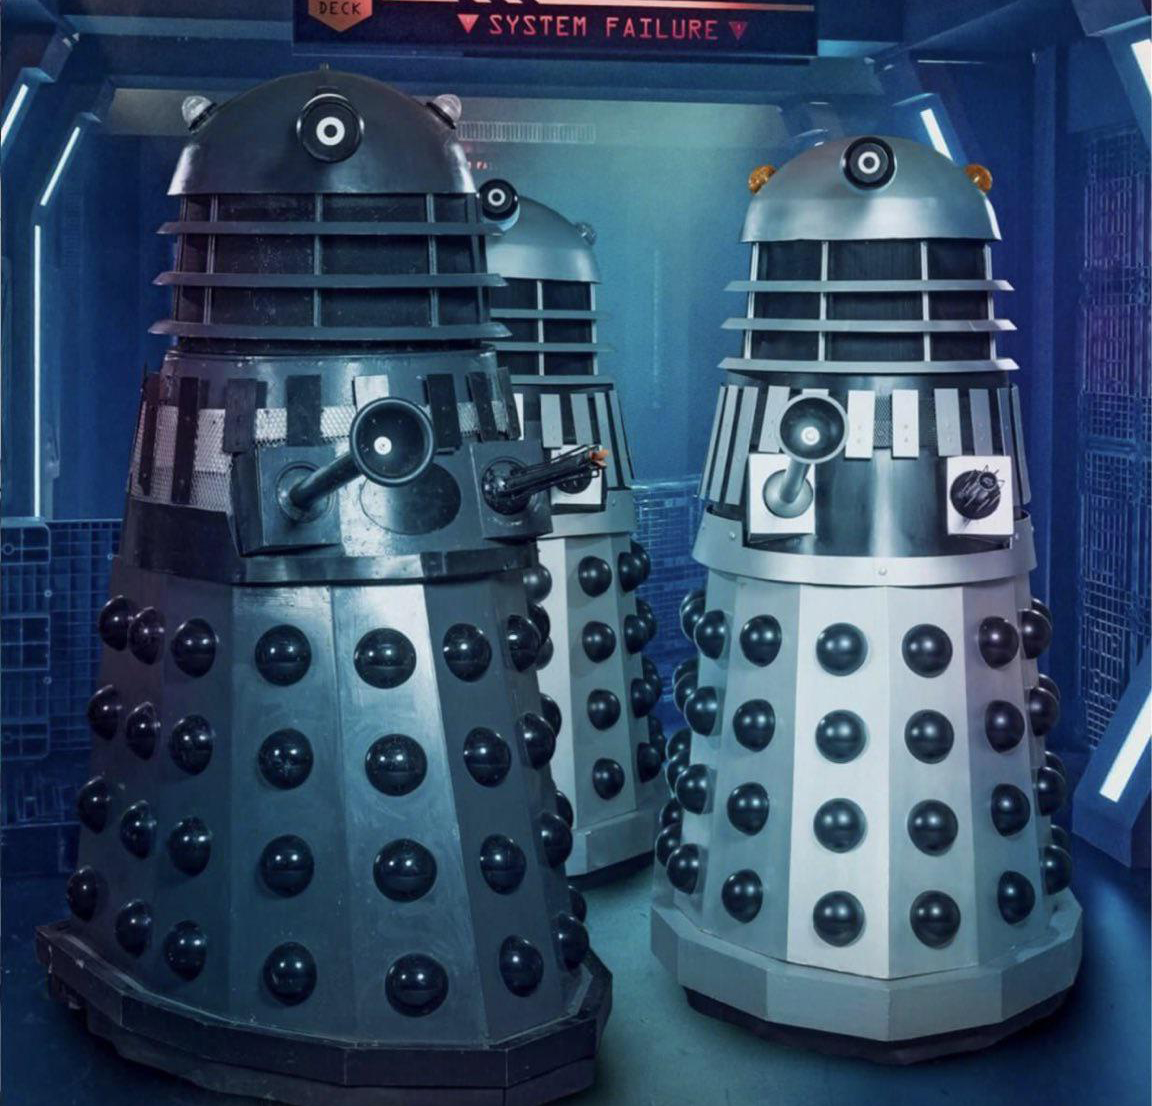 MBH1 with the two Hyde Fundraisers Daleks.